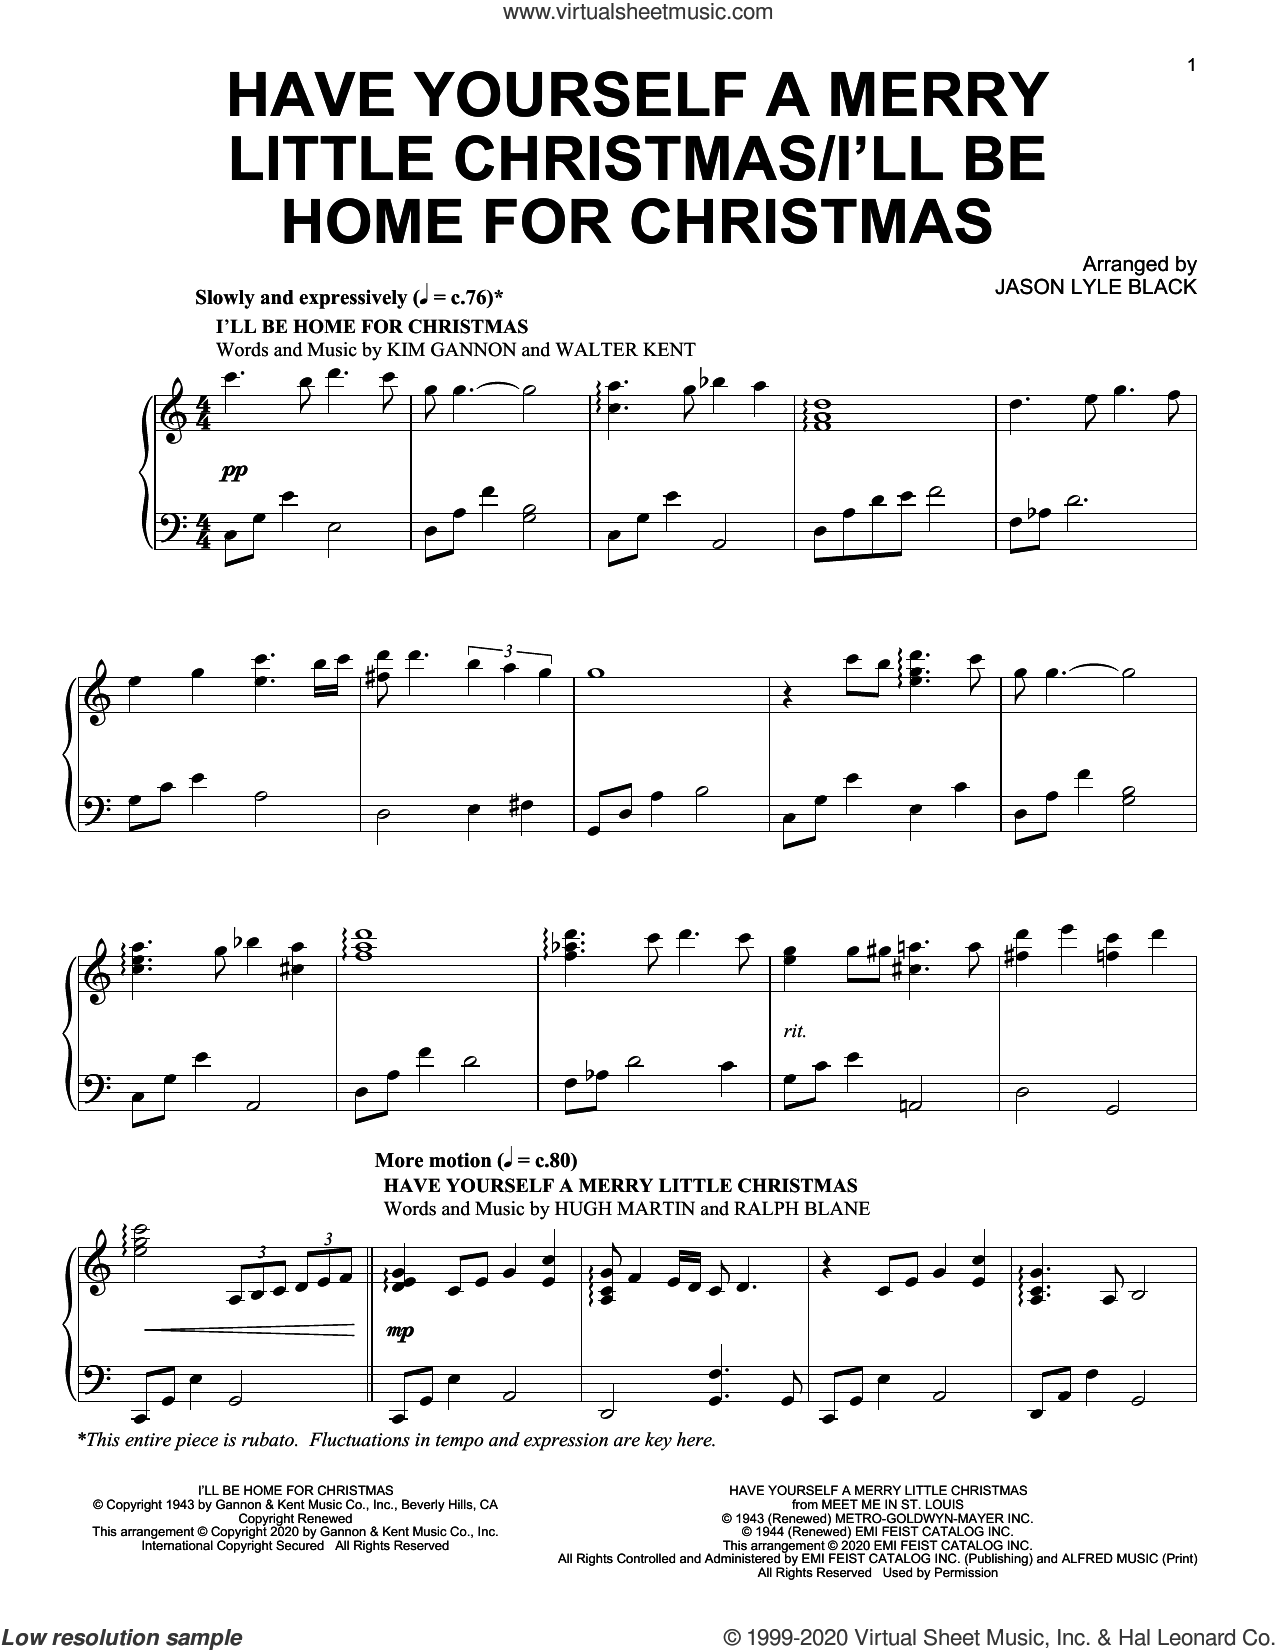 Have Yourself A Merry Little Christmas/I'll Be Home For Christmas sheet music for piano solo by Hugh Martin, Jason Lyle Black, Kim Gannon, Ralph Blane and Walter Kent, intermediate skill level